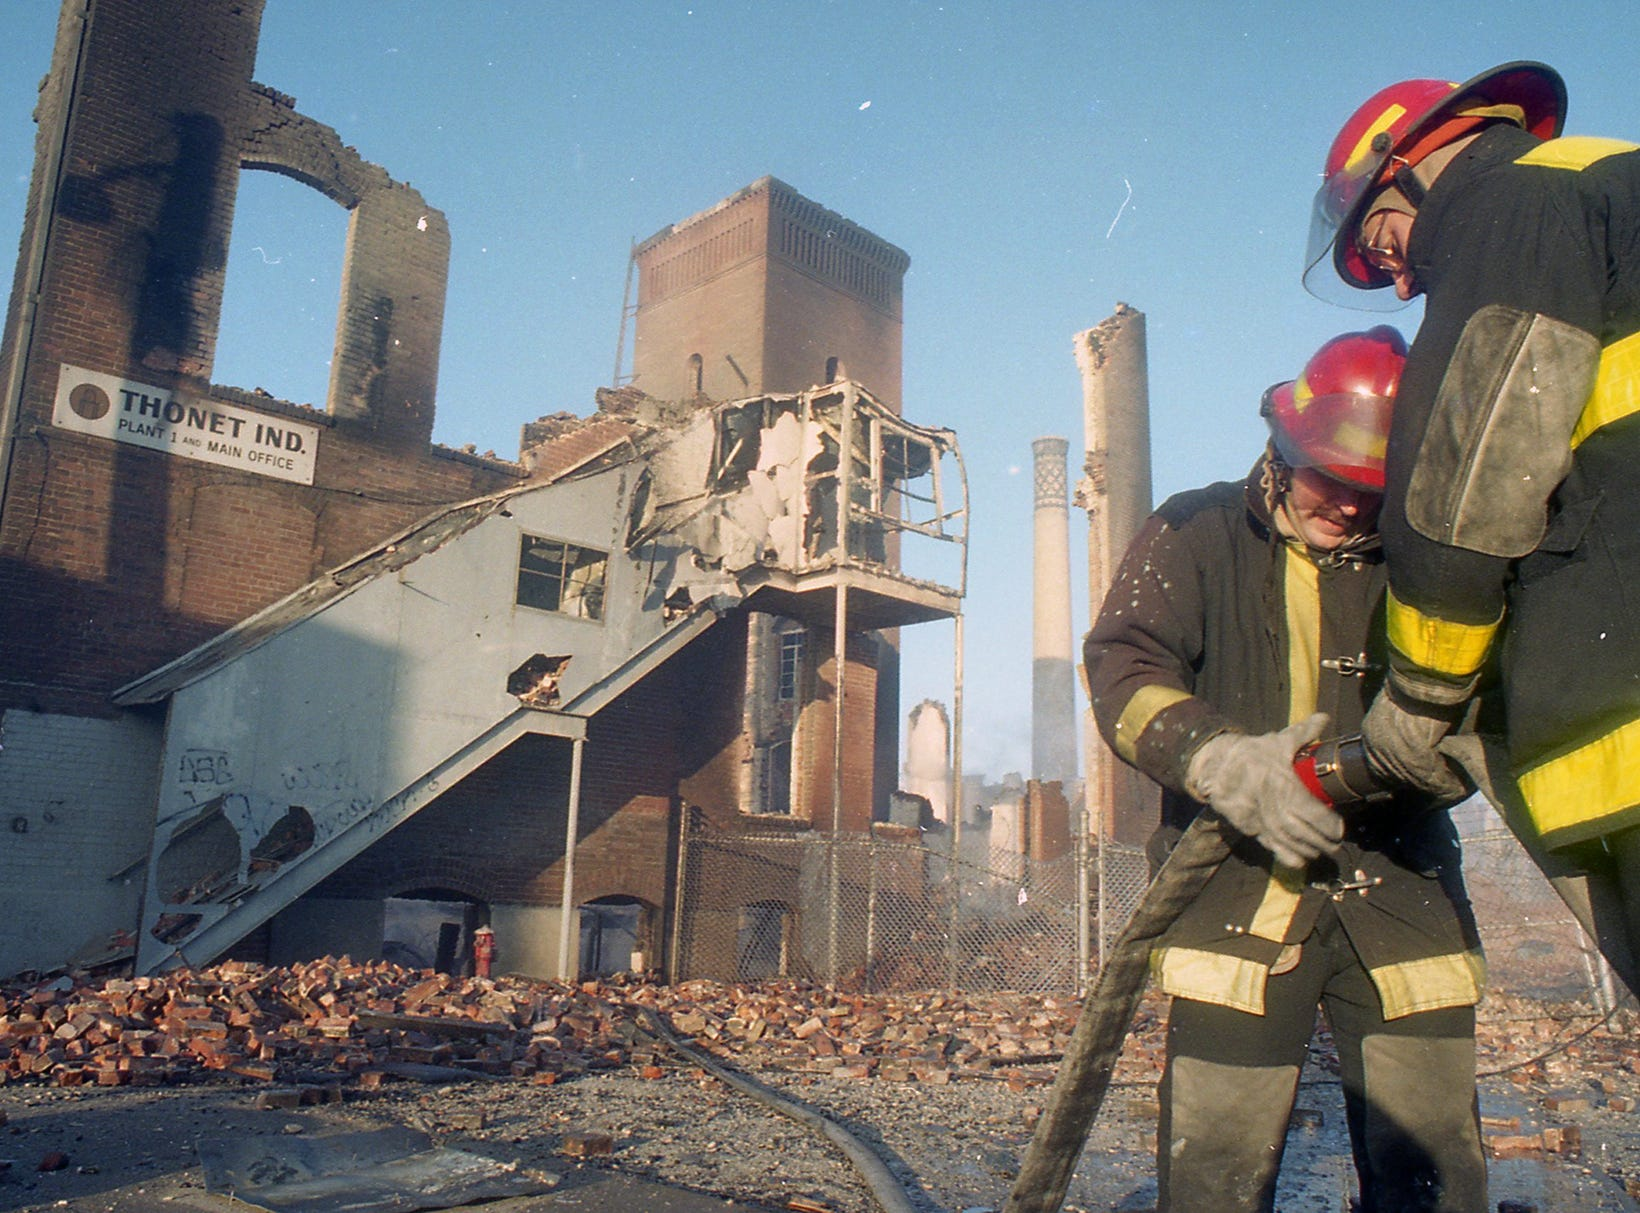 Firefighters disconnect hoses the morning after the fire. A fire began at the former Thonet Furniture plant at 491 East Princess Street on December 11, 1993. Eventually, the four alarm fire spread through the complex of buildings and several other properties.